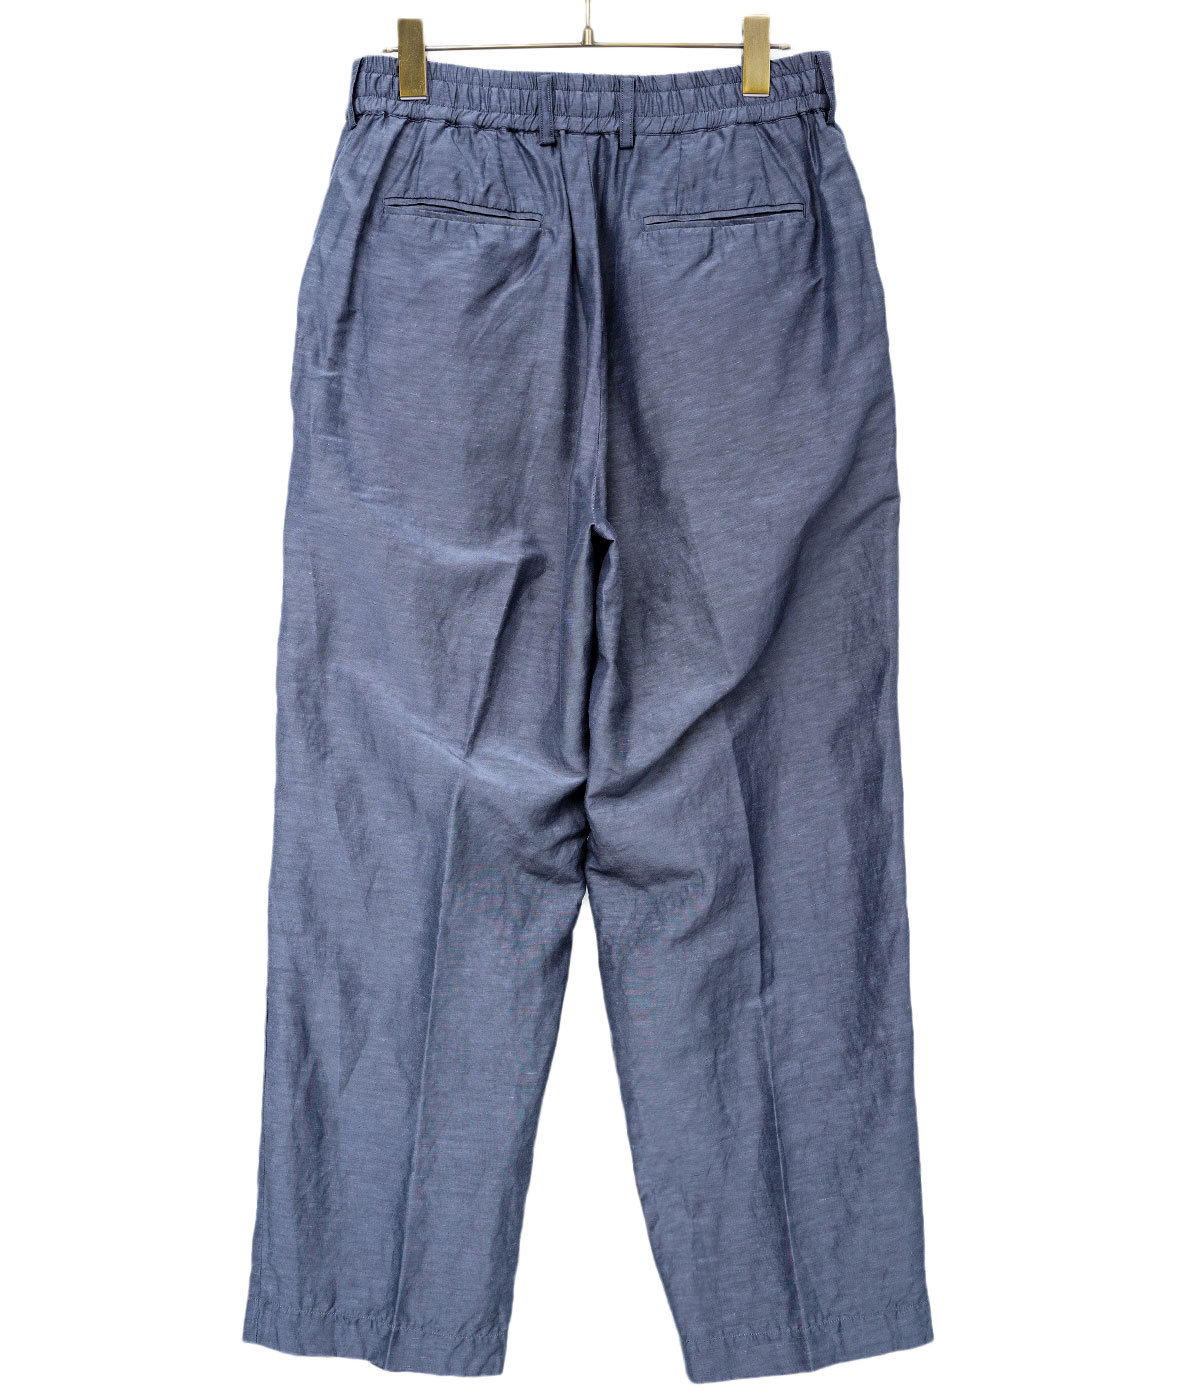 【ONLY ARK】別注3TUCK TAPERED FIT EASY - cu/li/co cloth -